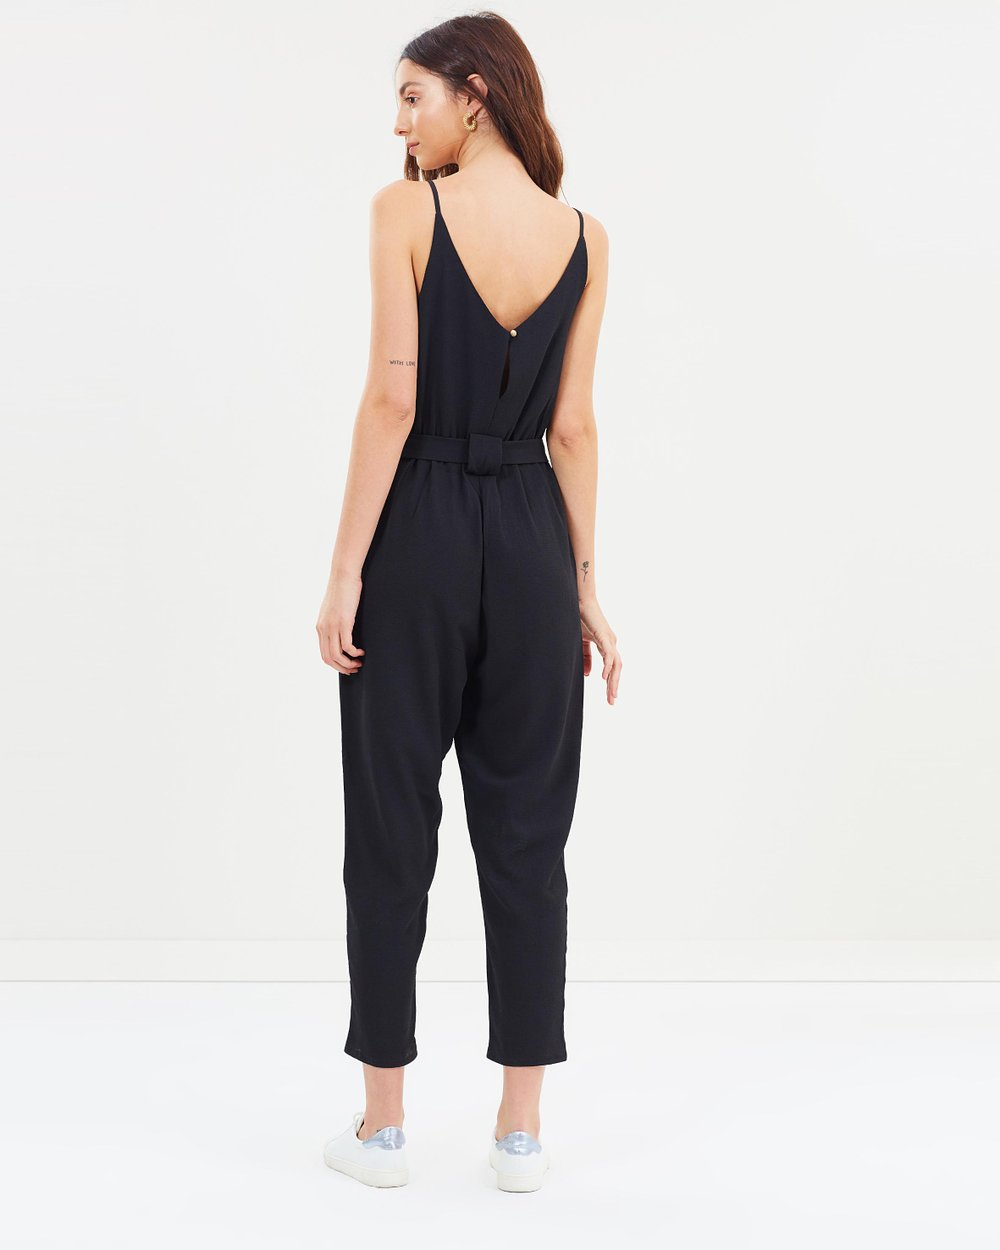 94e7468a85f3 Woven Strappy Jackie Jumpsuit by Cotton On Online